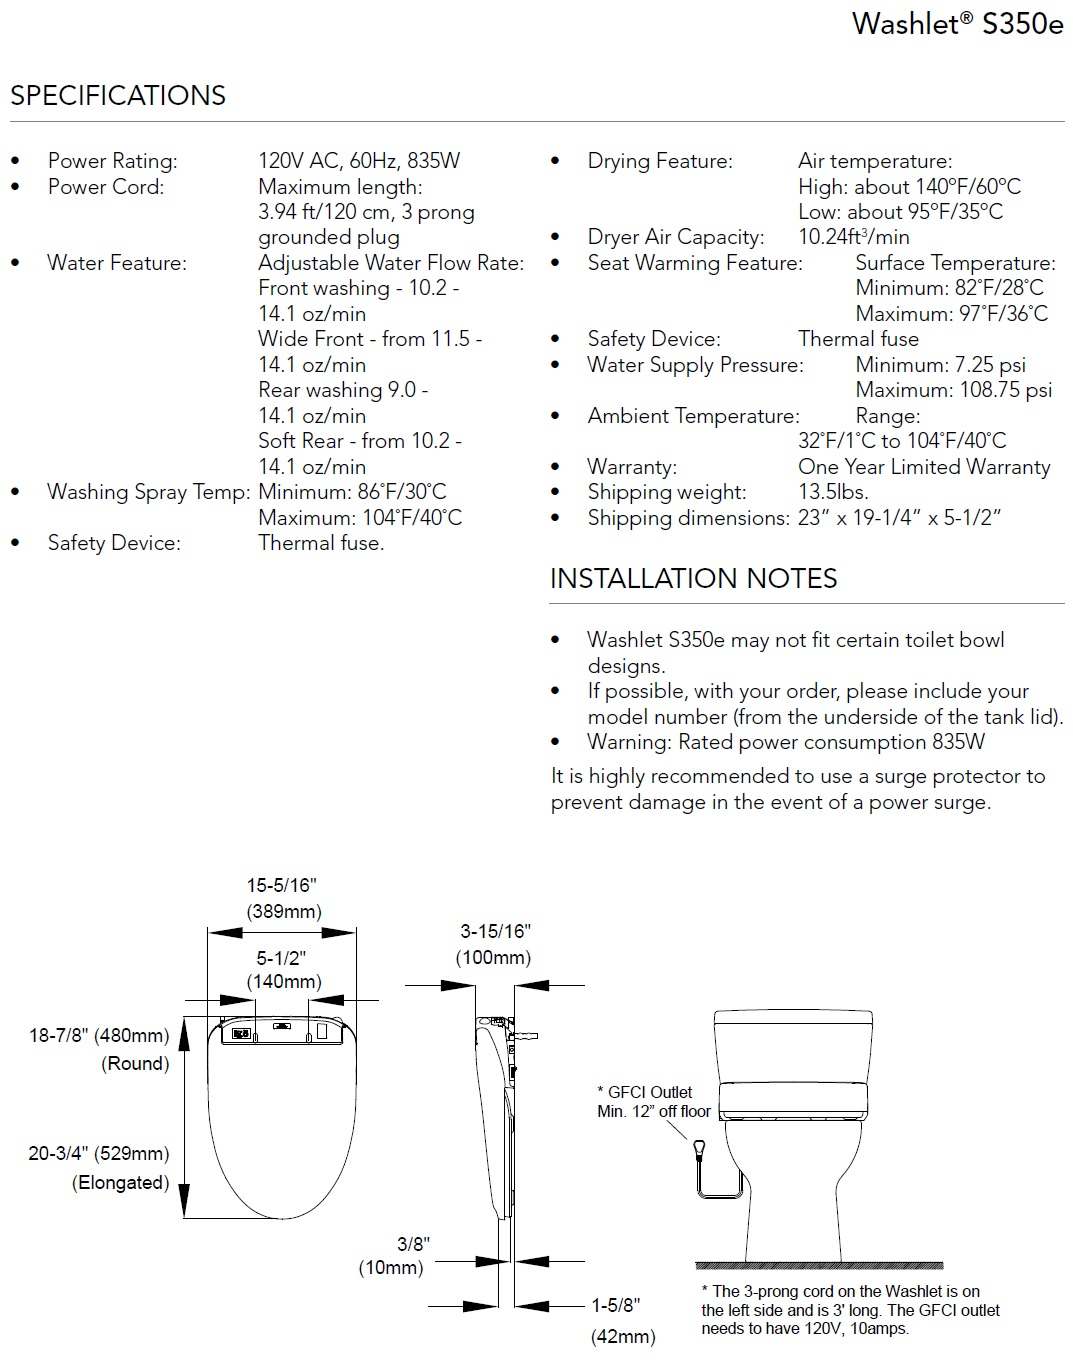 TOTO S350e Washlet Specifications